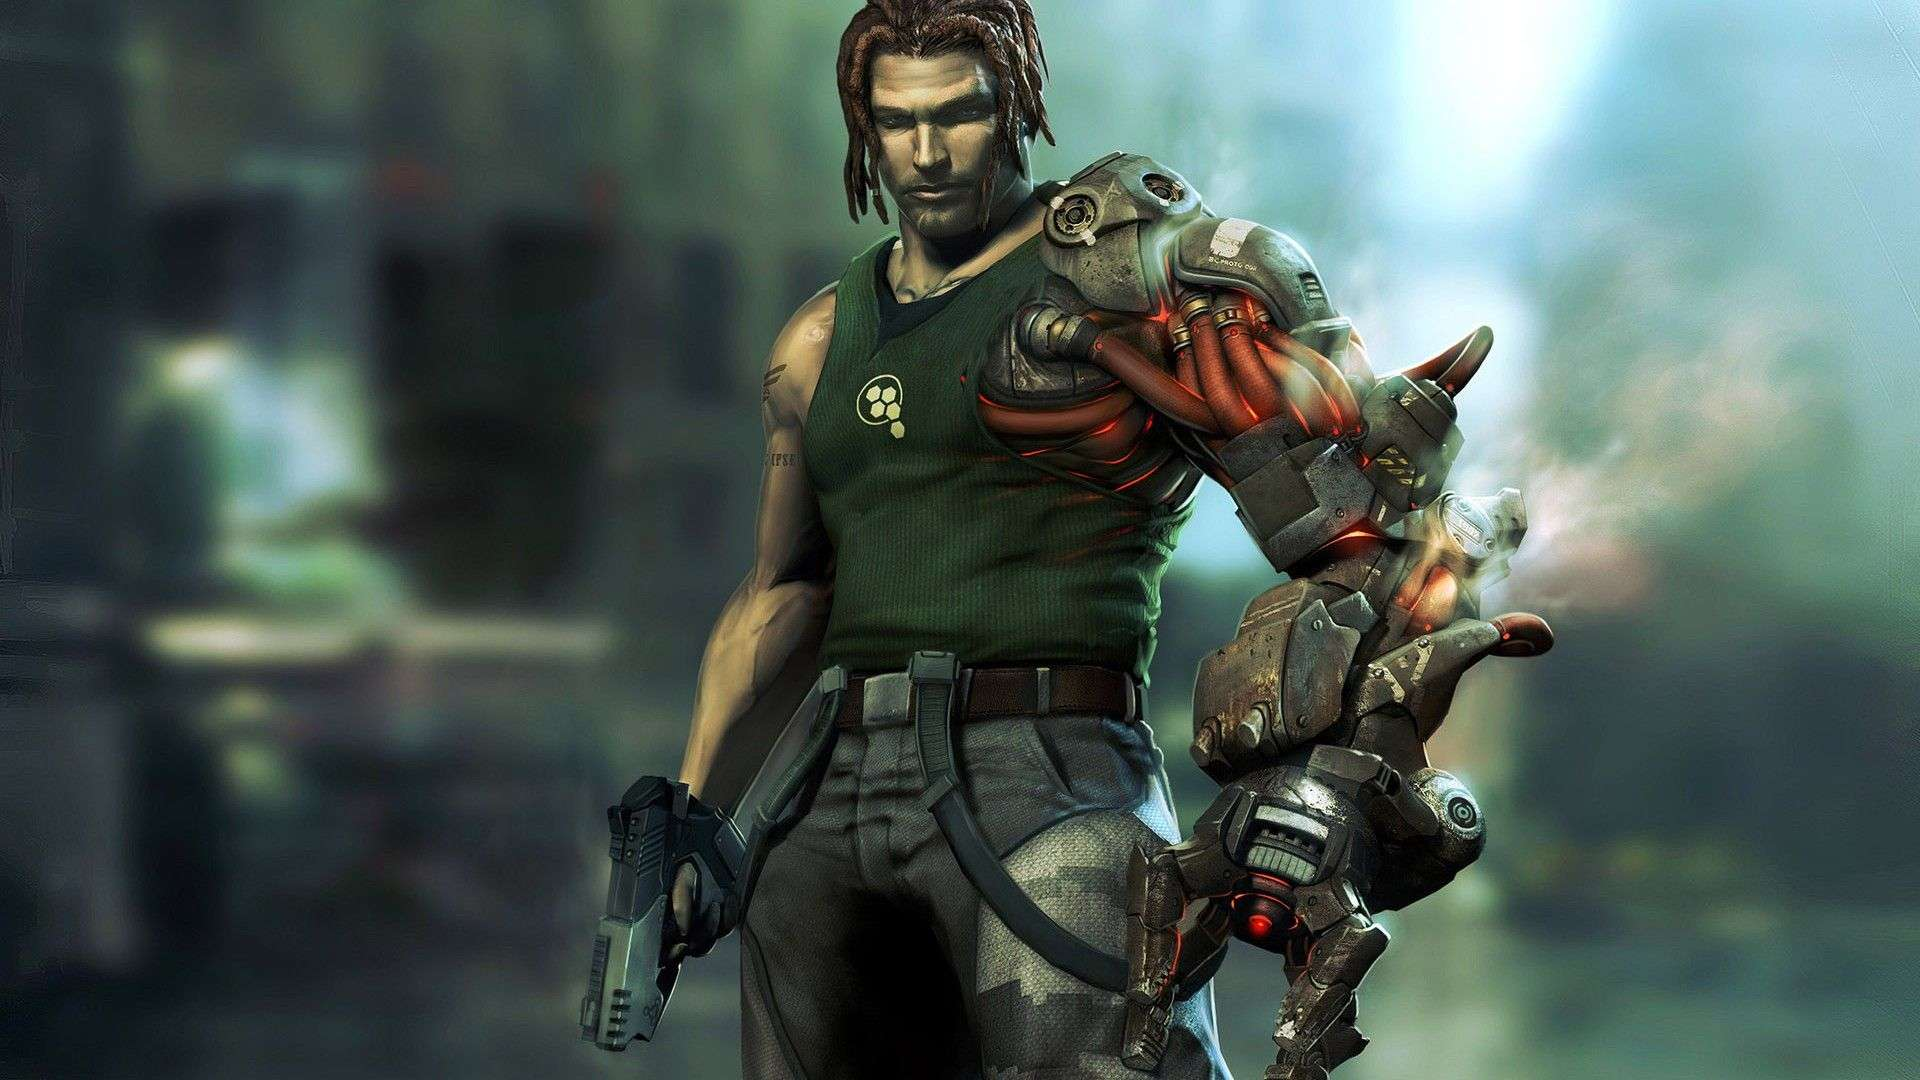 Commando 2 Wallpaper: Bionic Commando Rearmed 2 Wallpaper : Hd Wallpapers